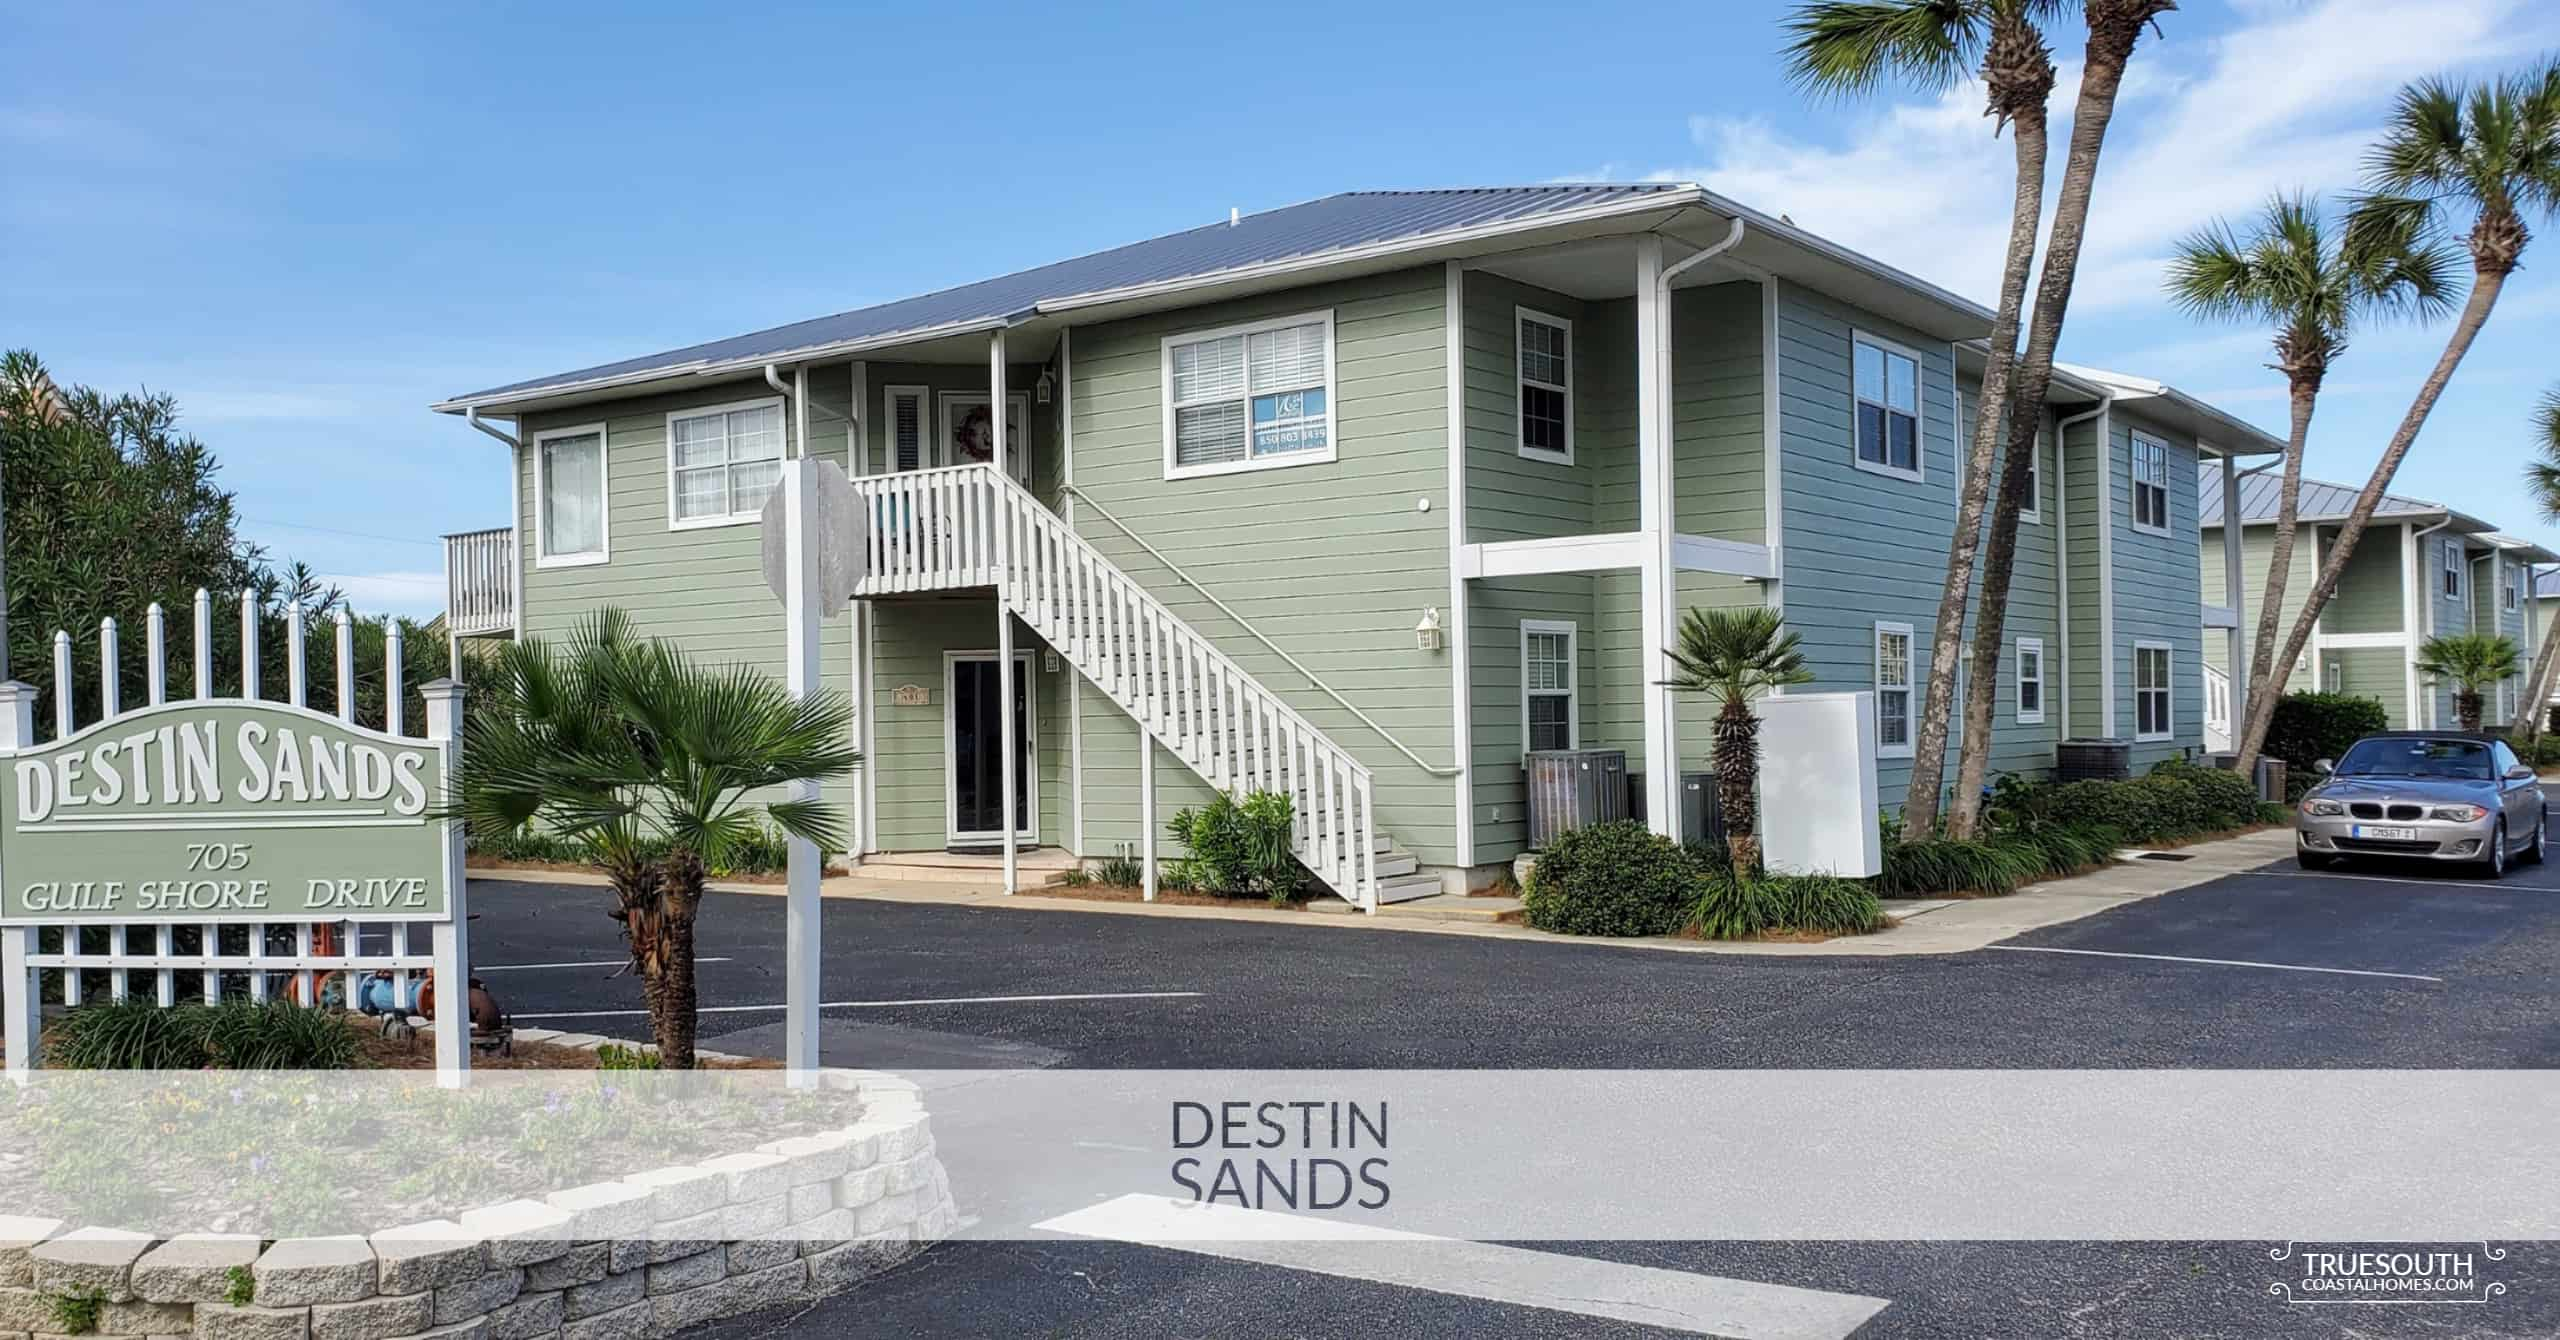 Destin Sands Entrace